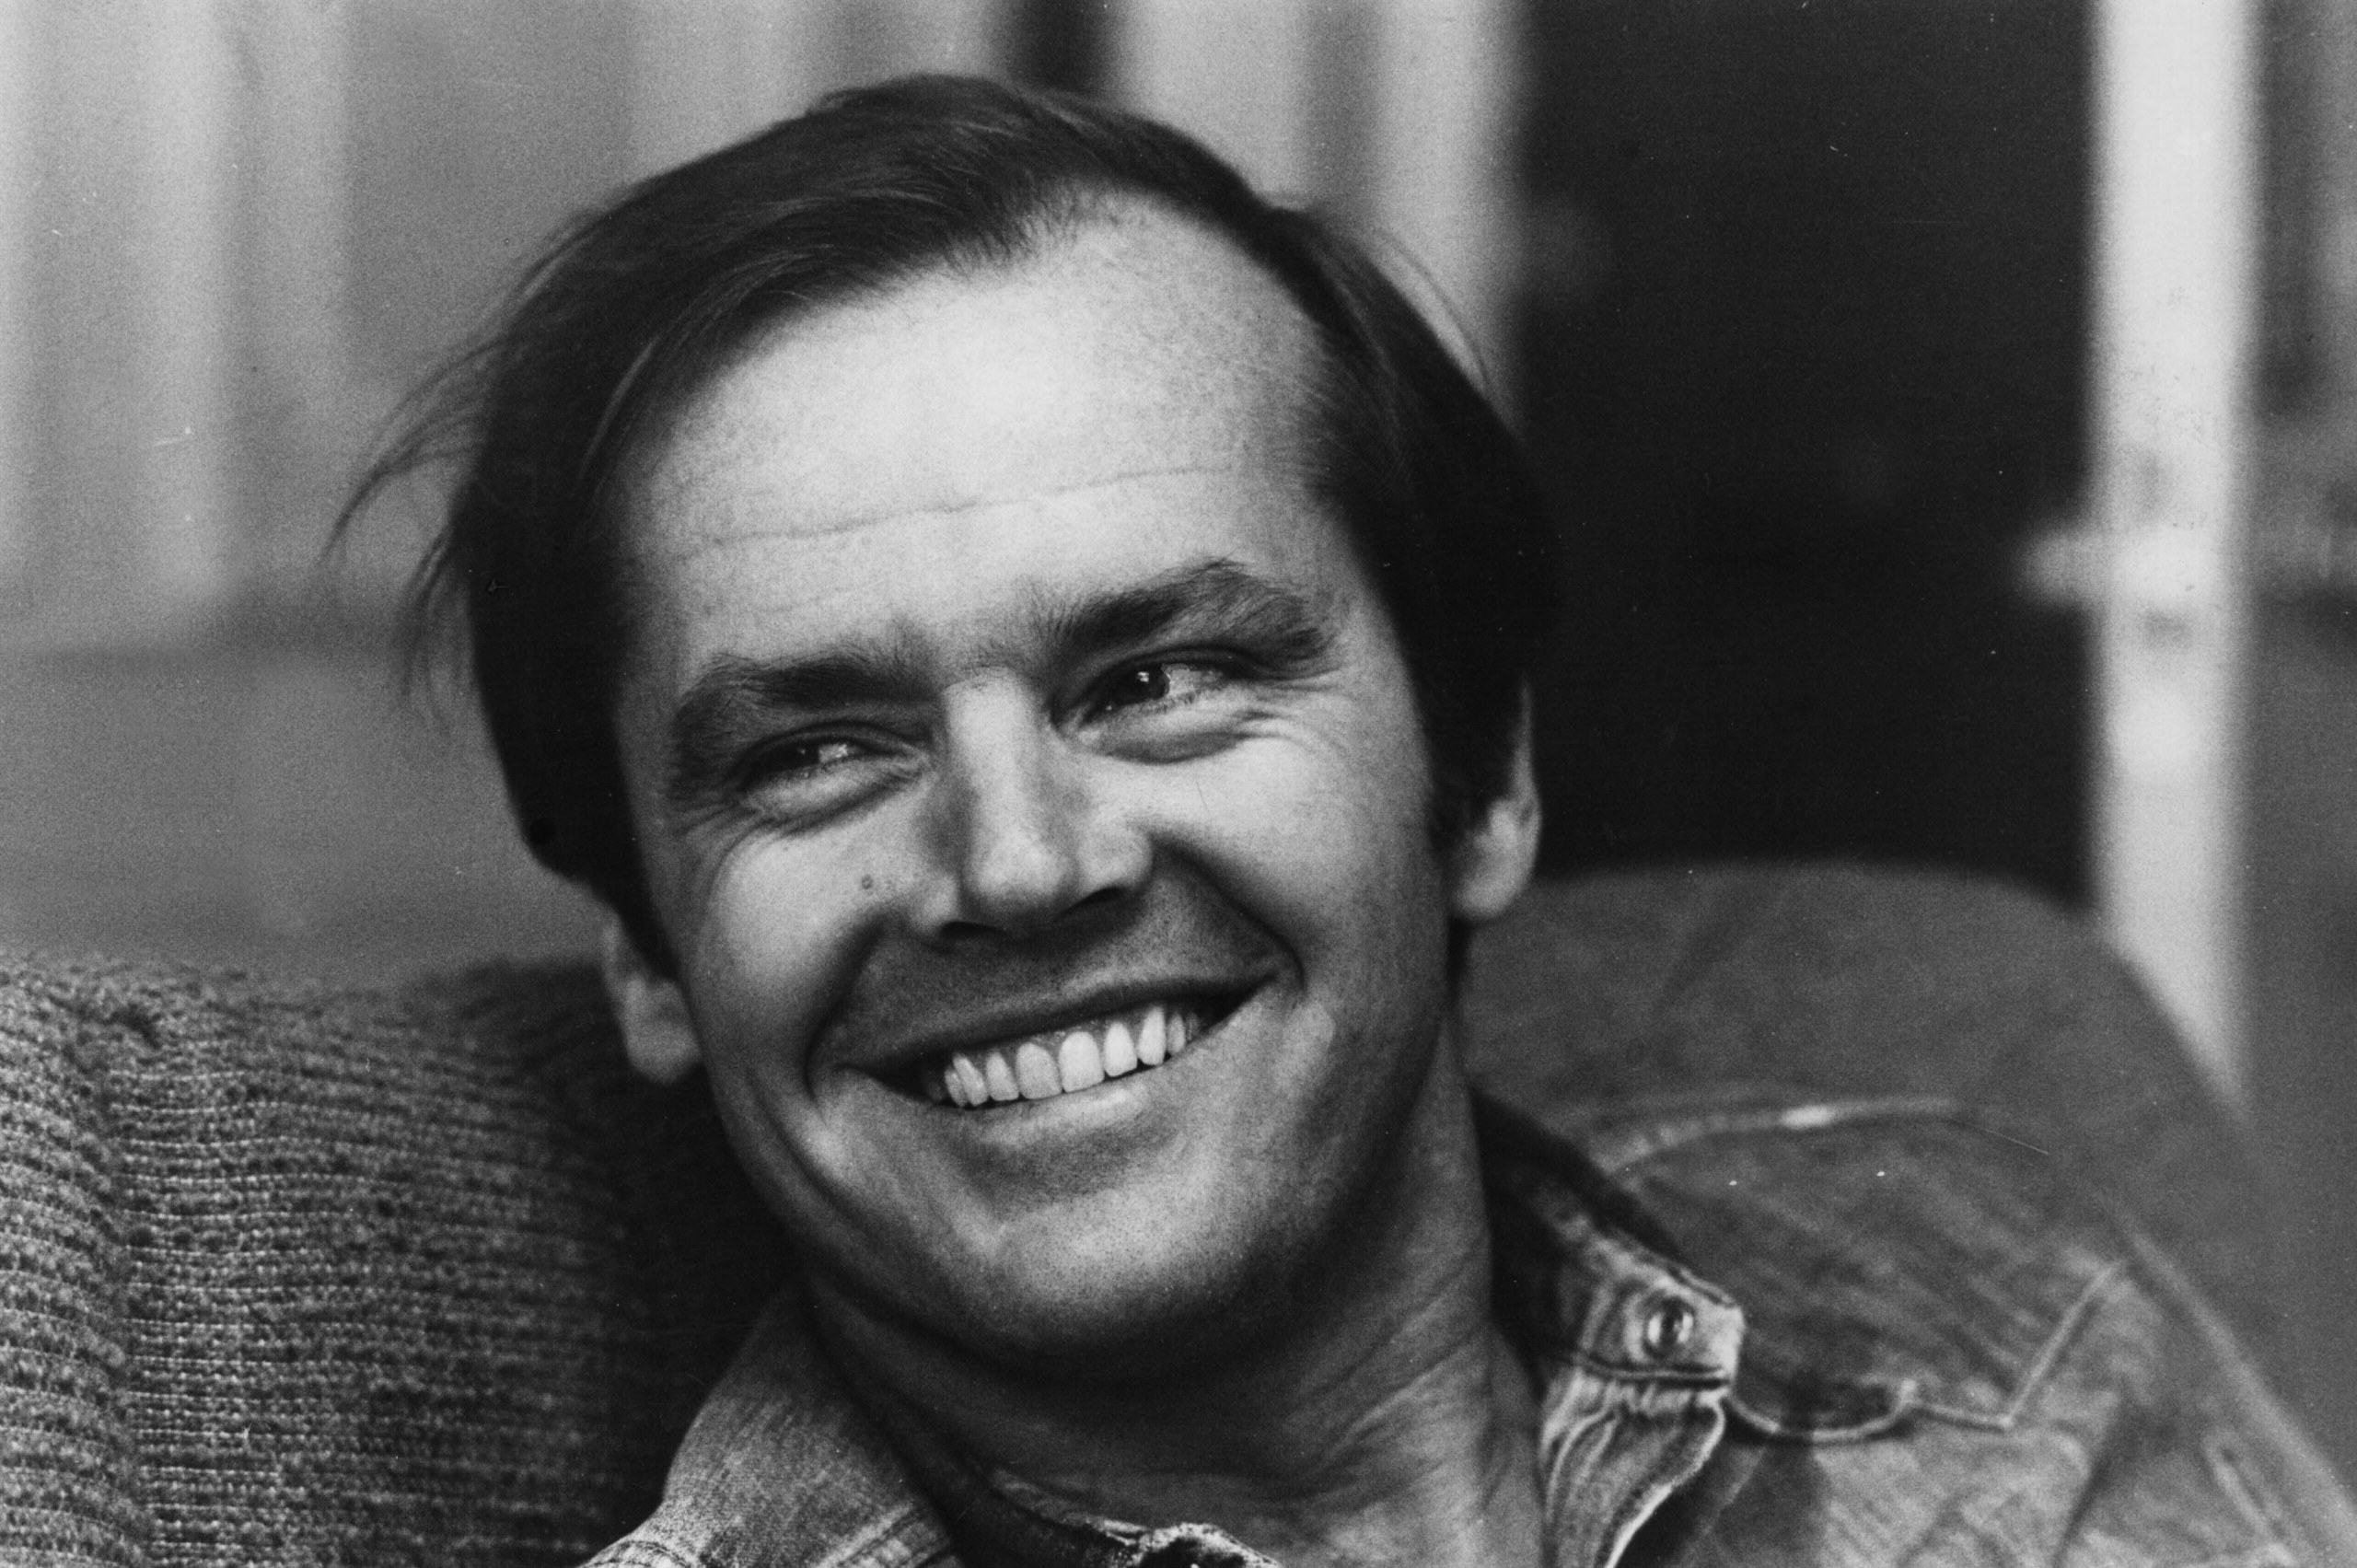 210 As Jack Nicholson Turns 78 Today, Here Are Some Of His Best Quotes